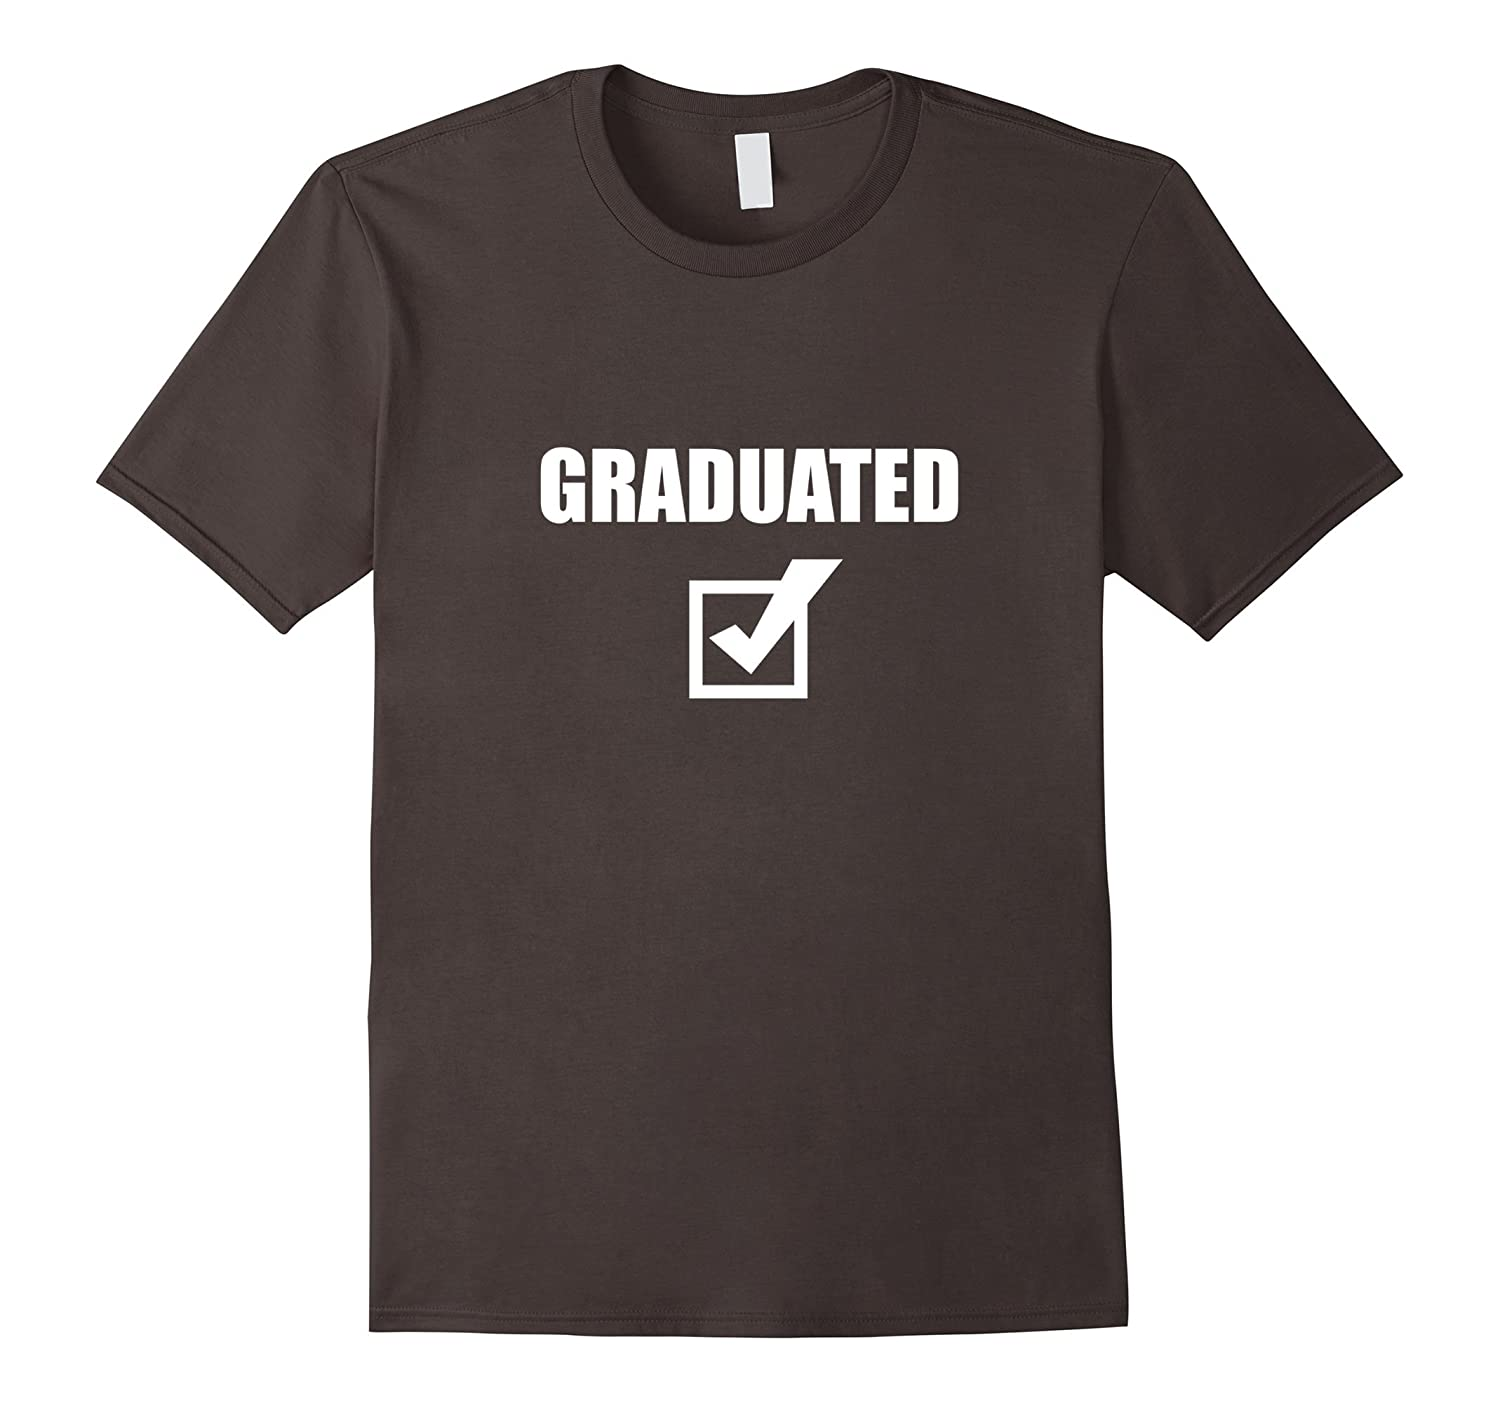 Funny Graduation T-Shirt - Graduated Check-TH